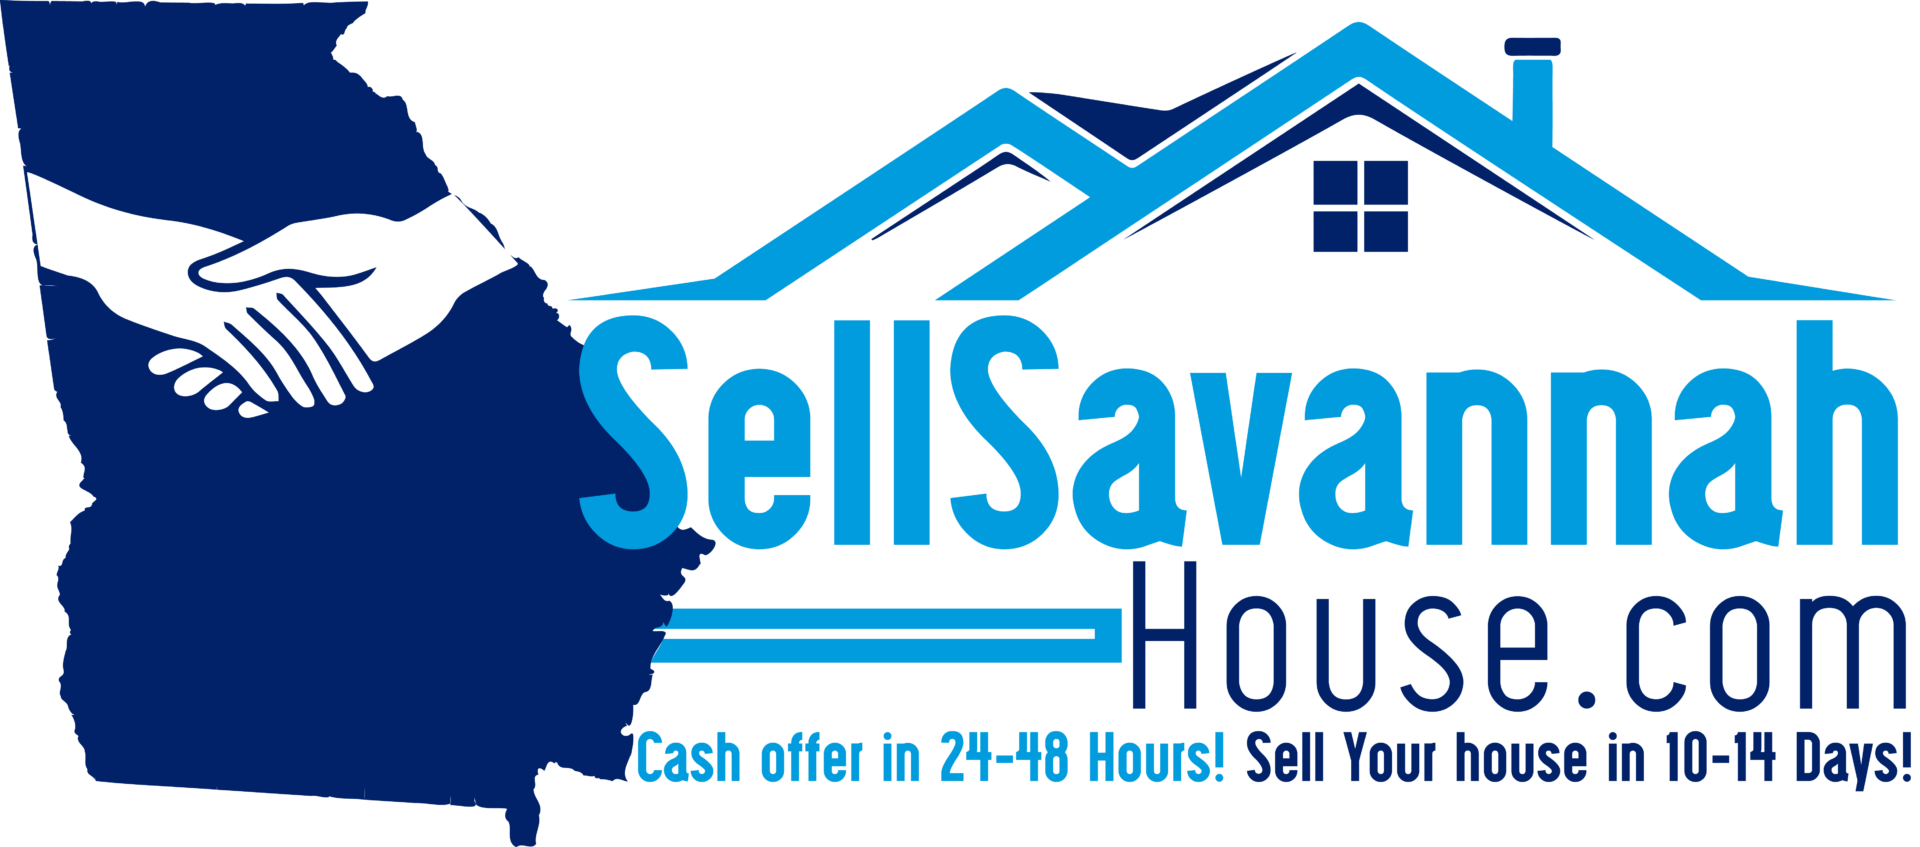 sellsavannahhouse.com logo